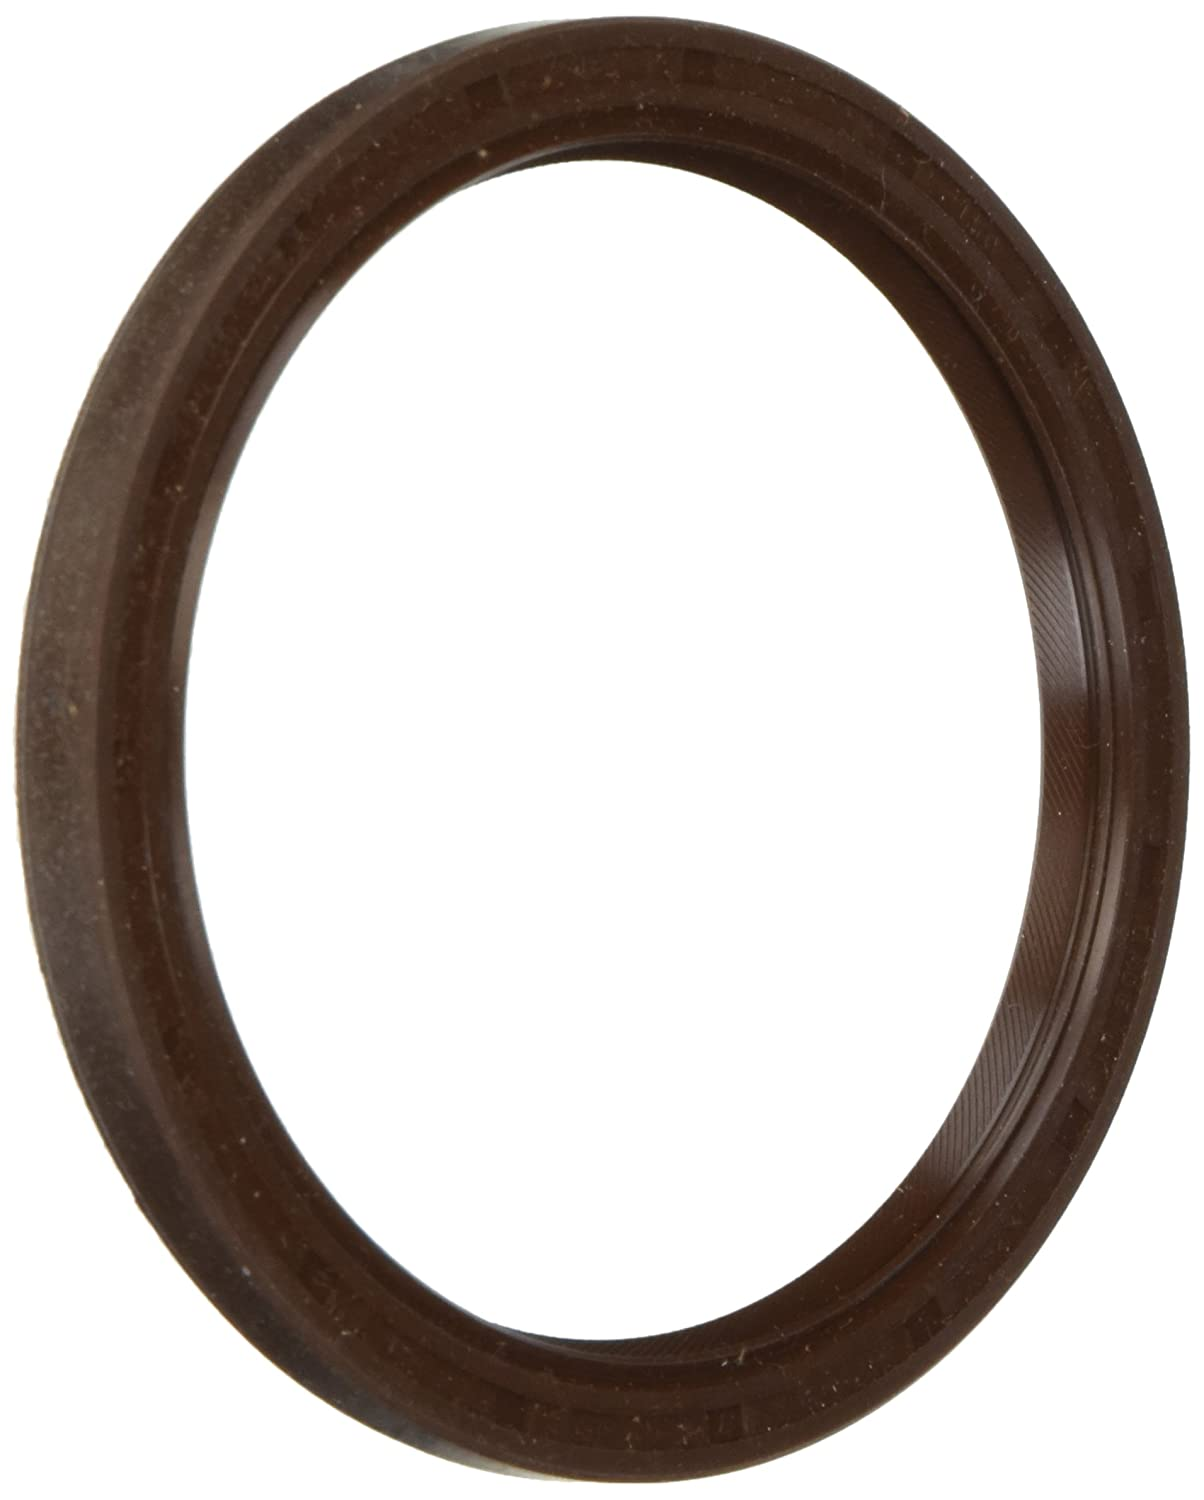 MAHLE Original 67863 Engine Crankshaft Seal